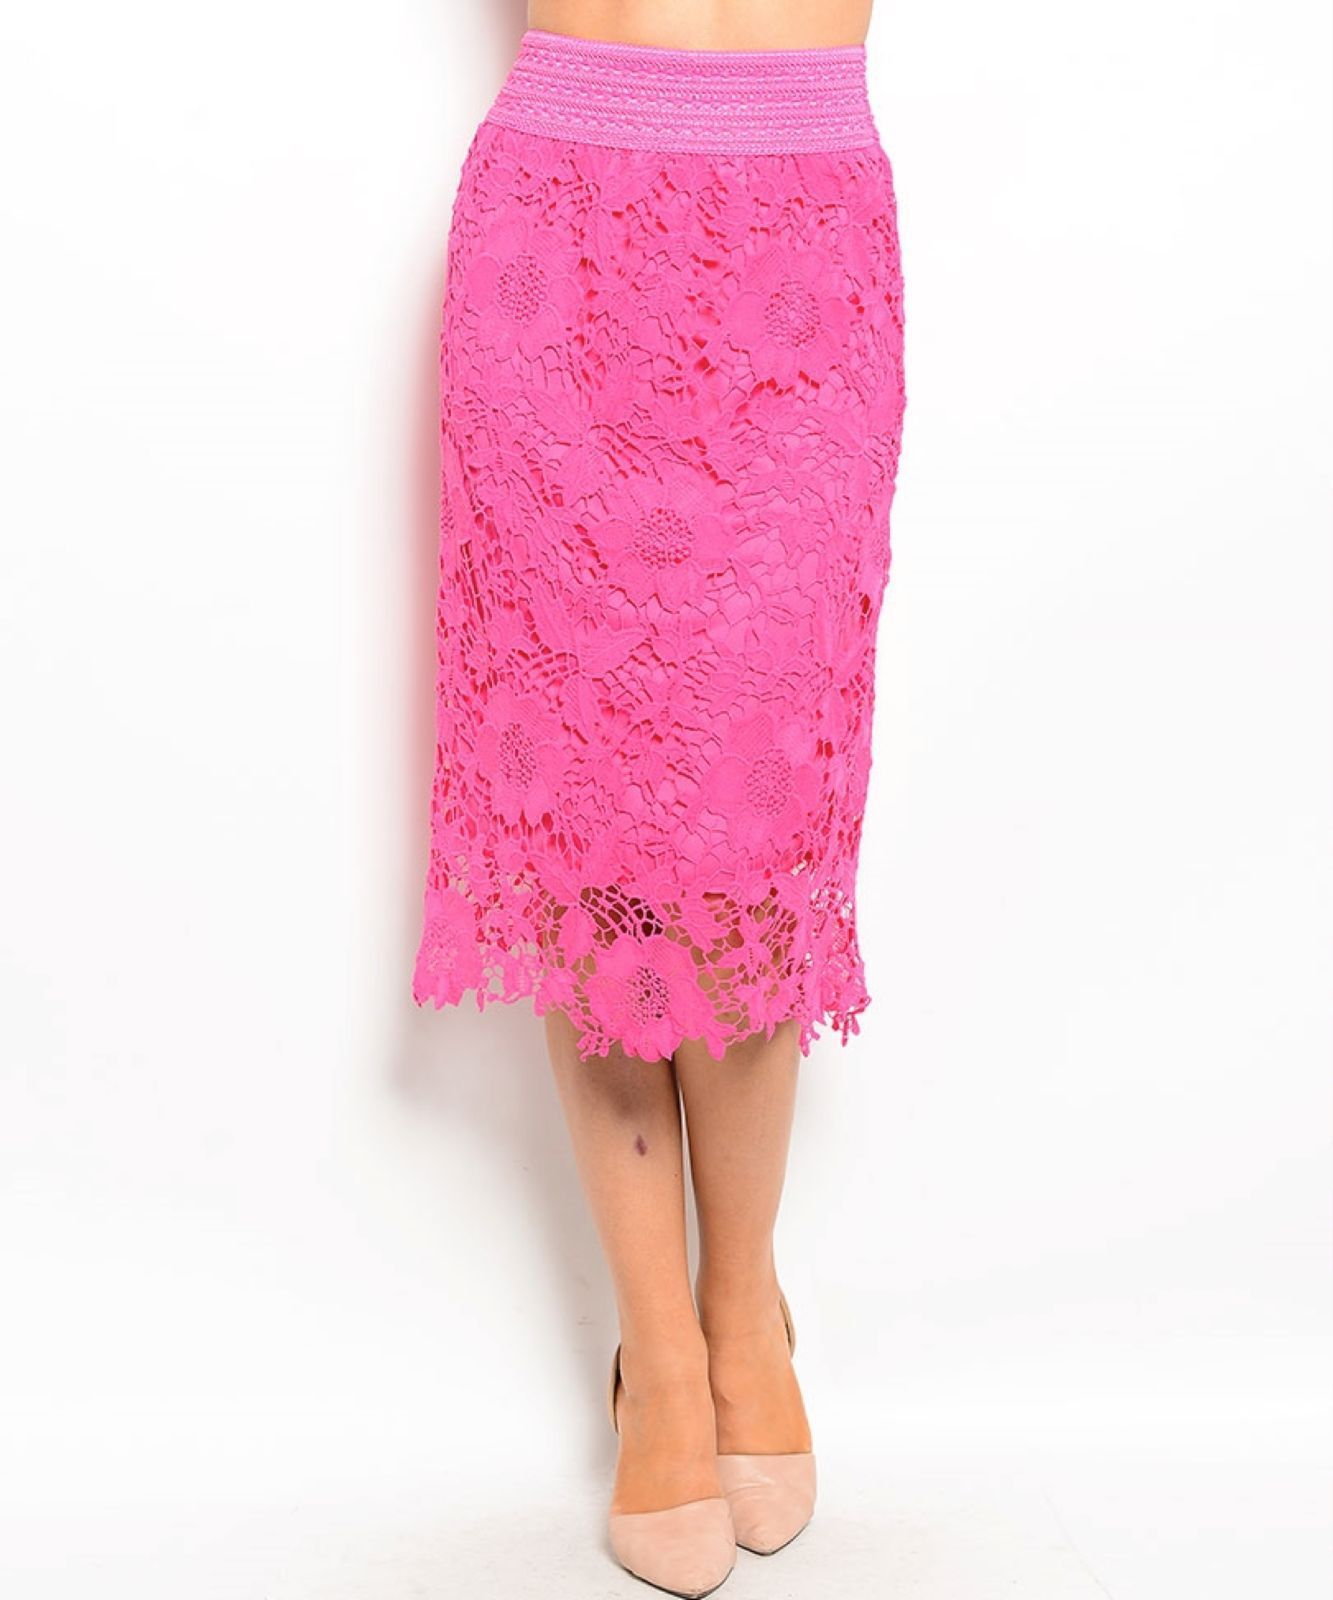 Chic Crochet Lace Lined Jr Skirt, Cocktail Club Wedding Party, Fuchsia or Aqua -